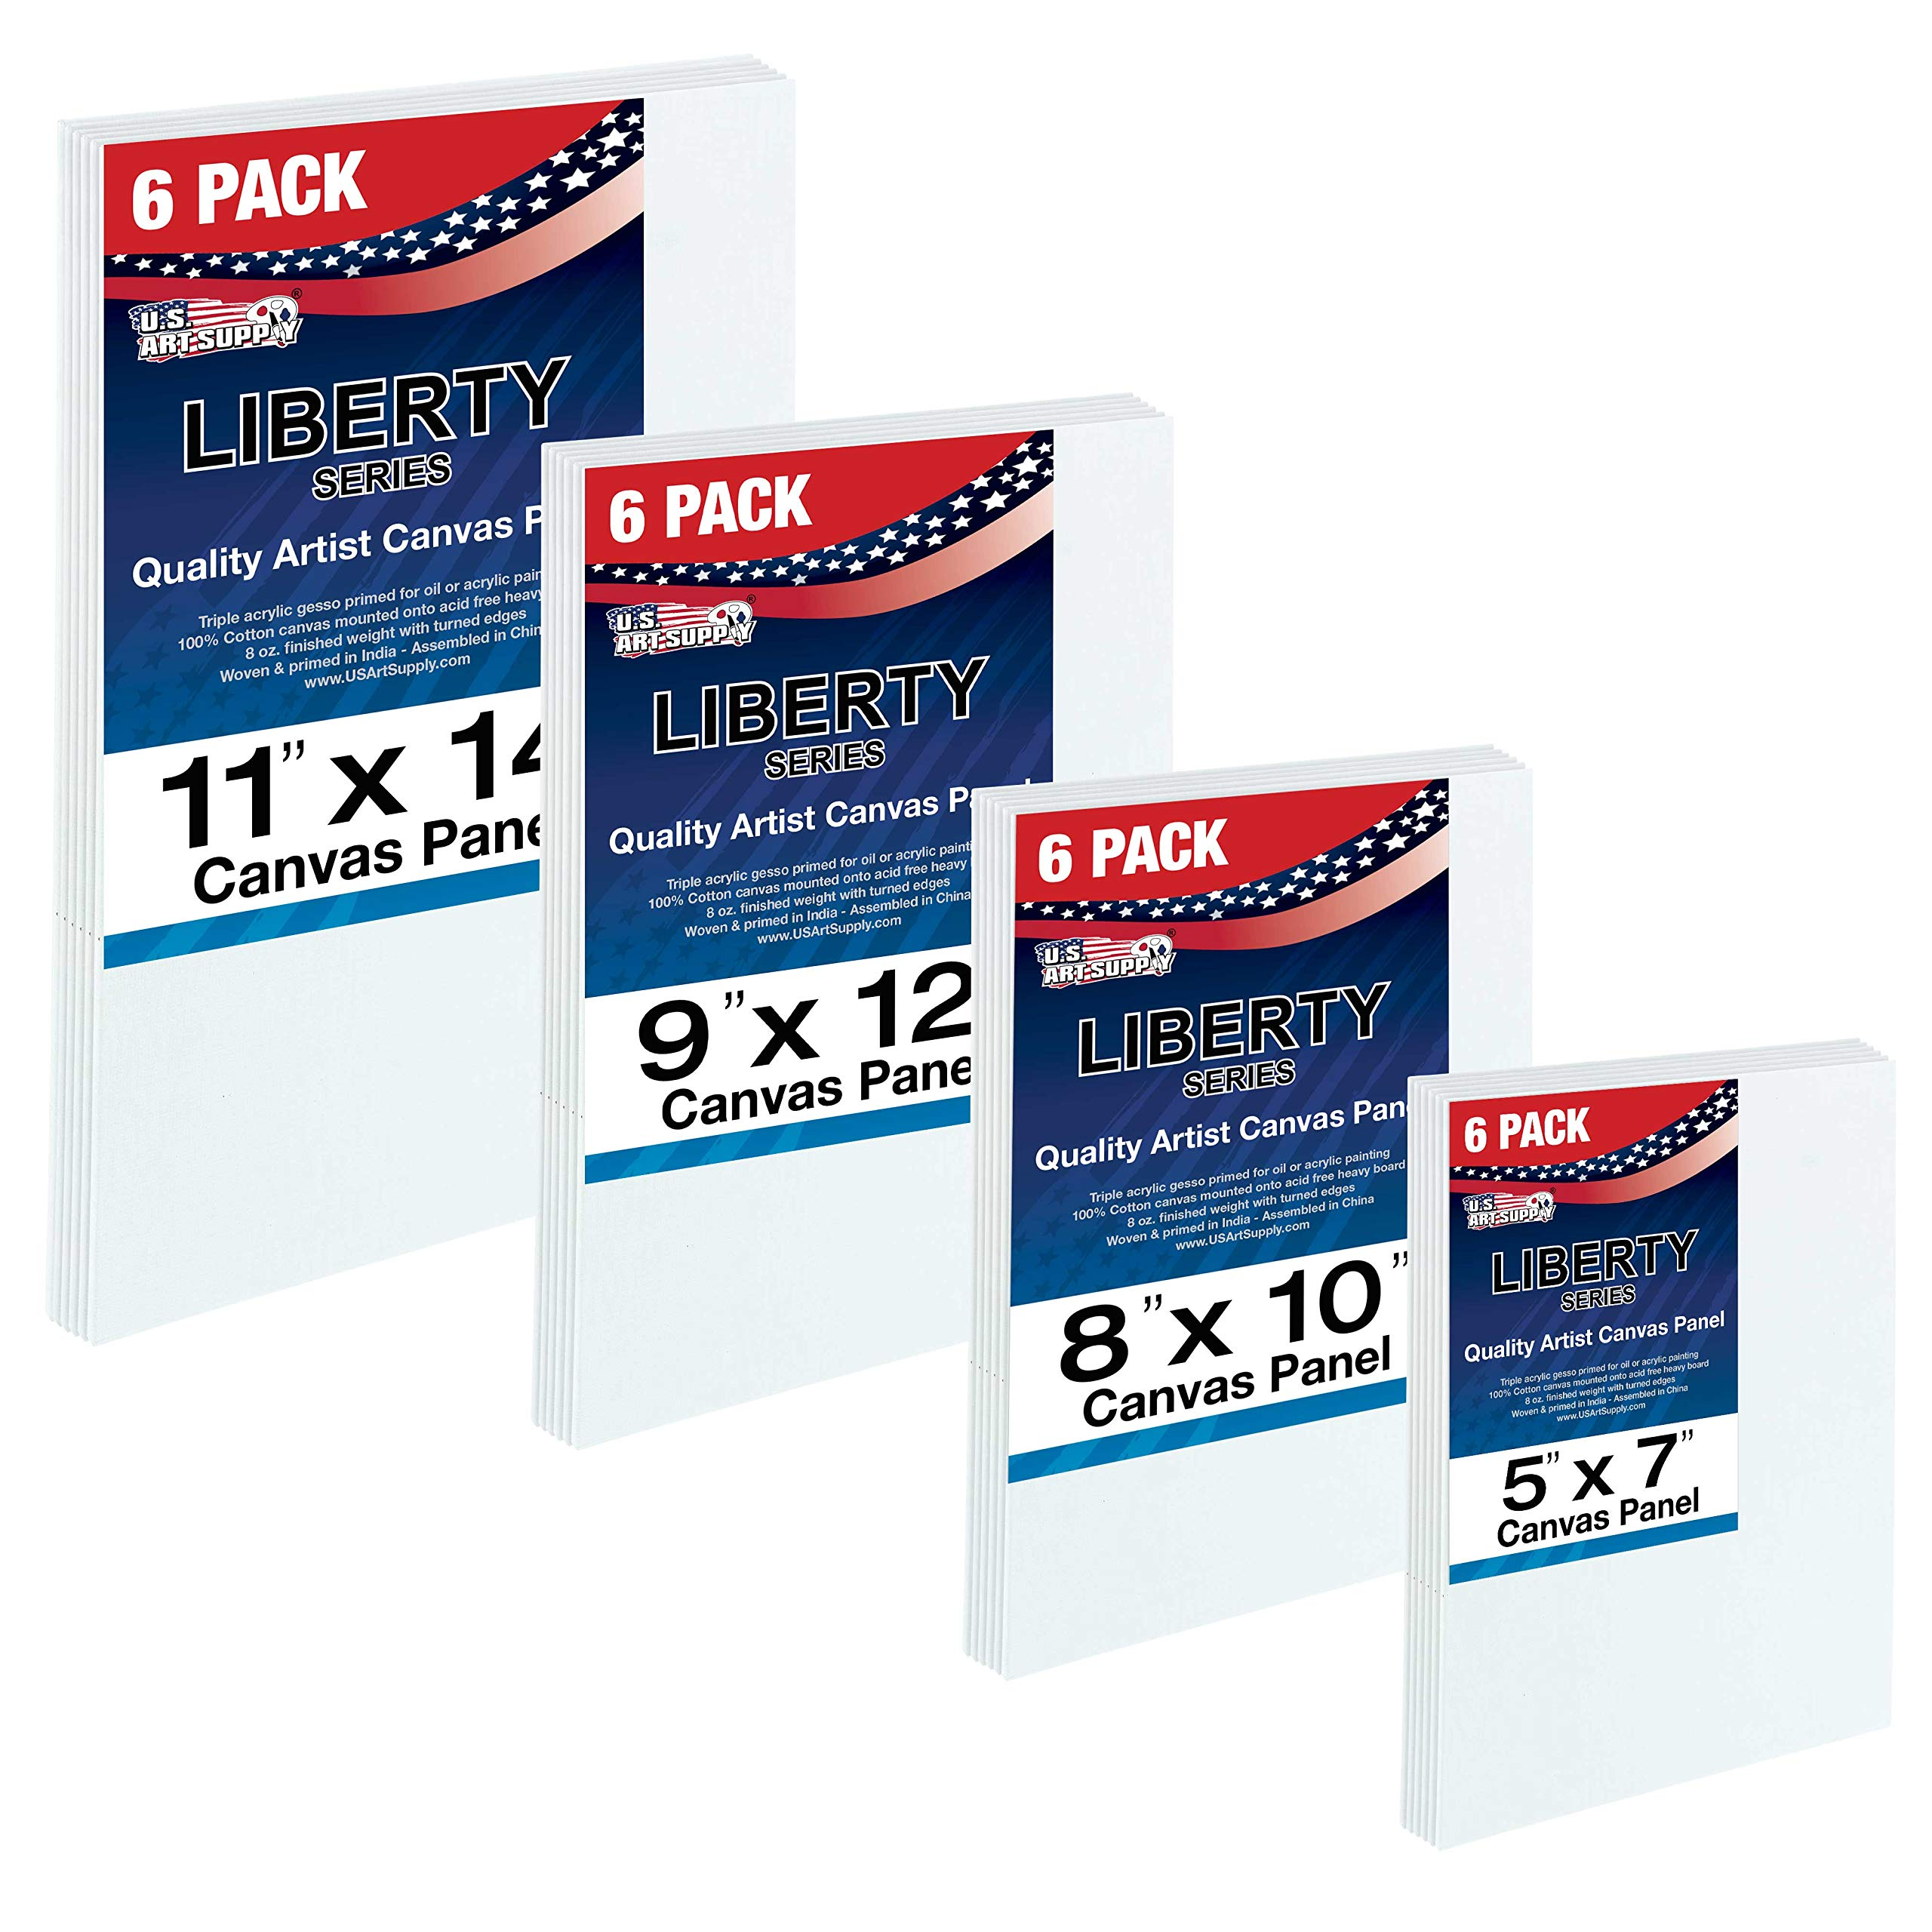 US Art Supply Multi-pack 6-Ea of 5 x 7, 8 x 10, 9 x 12, 11 x 14 inch. Professional Quality Medium Artist Canvas Panel Assortment Pack (24 Total Panels) by US Art Supply